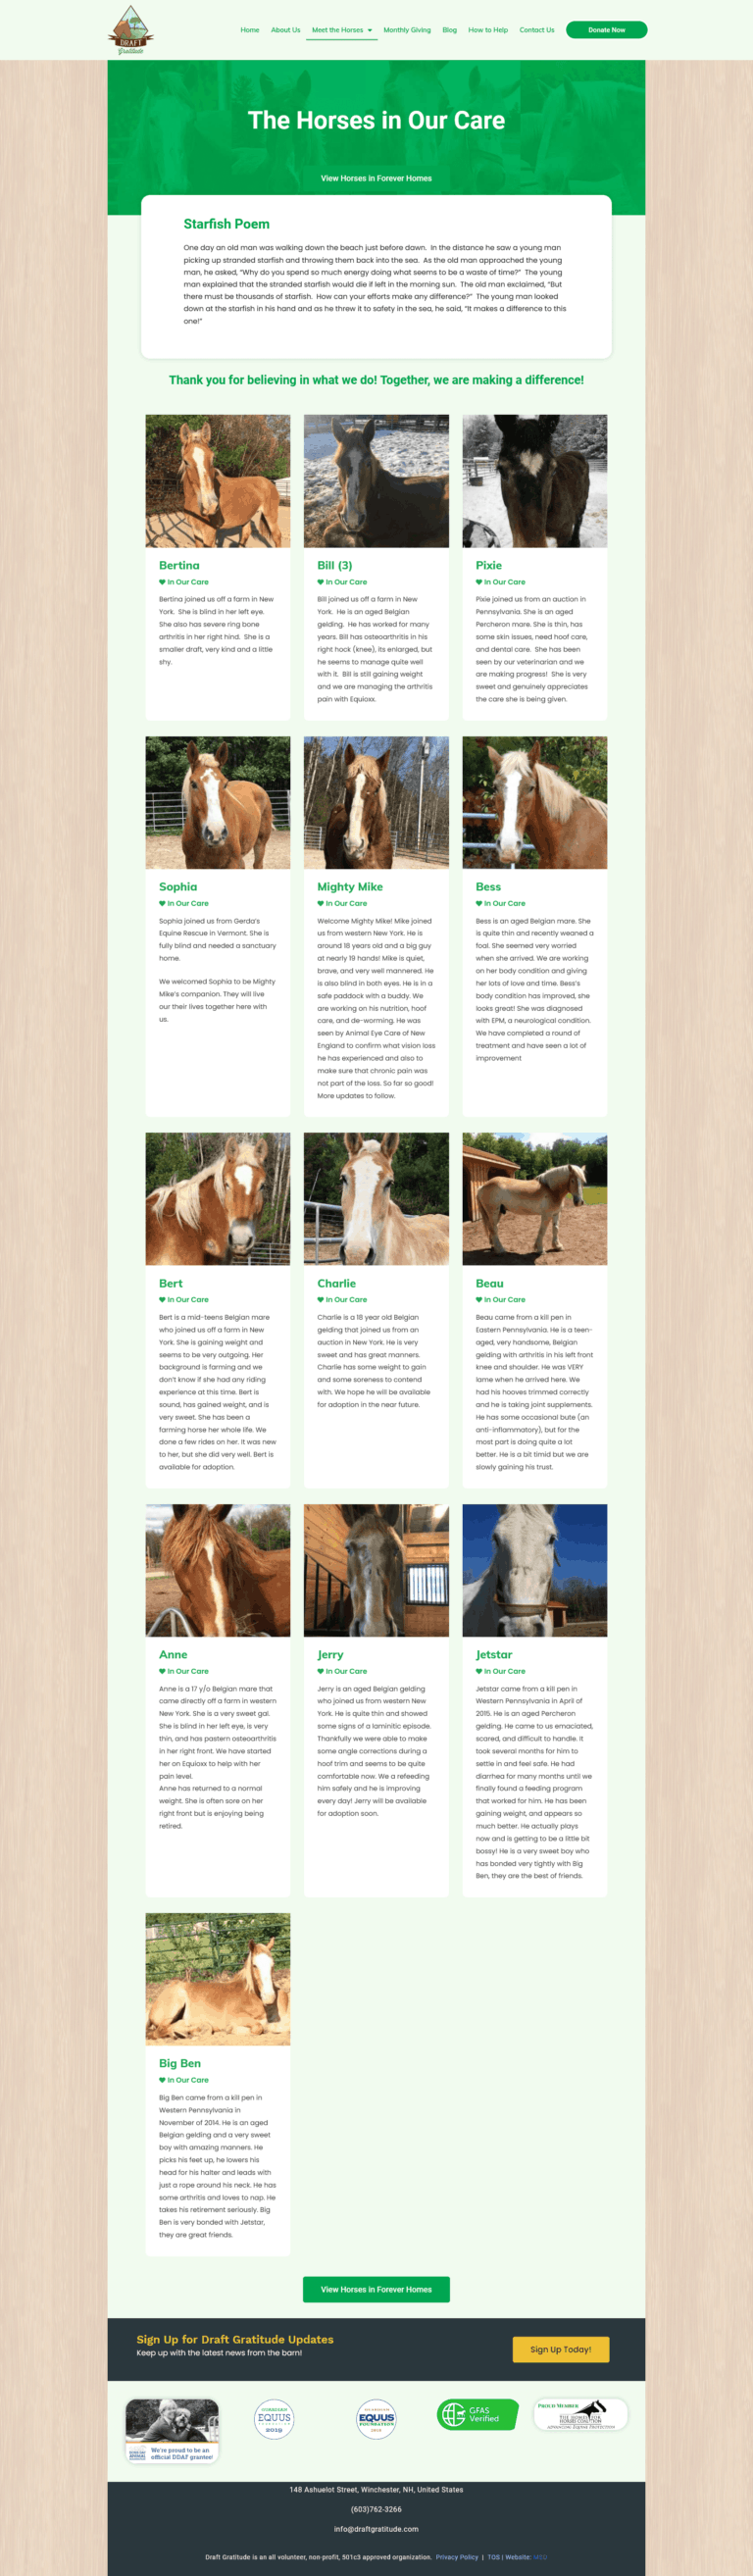 horses in our care page